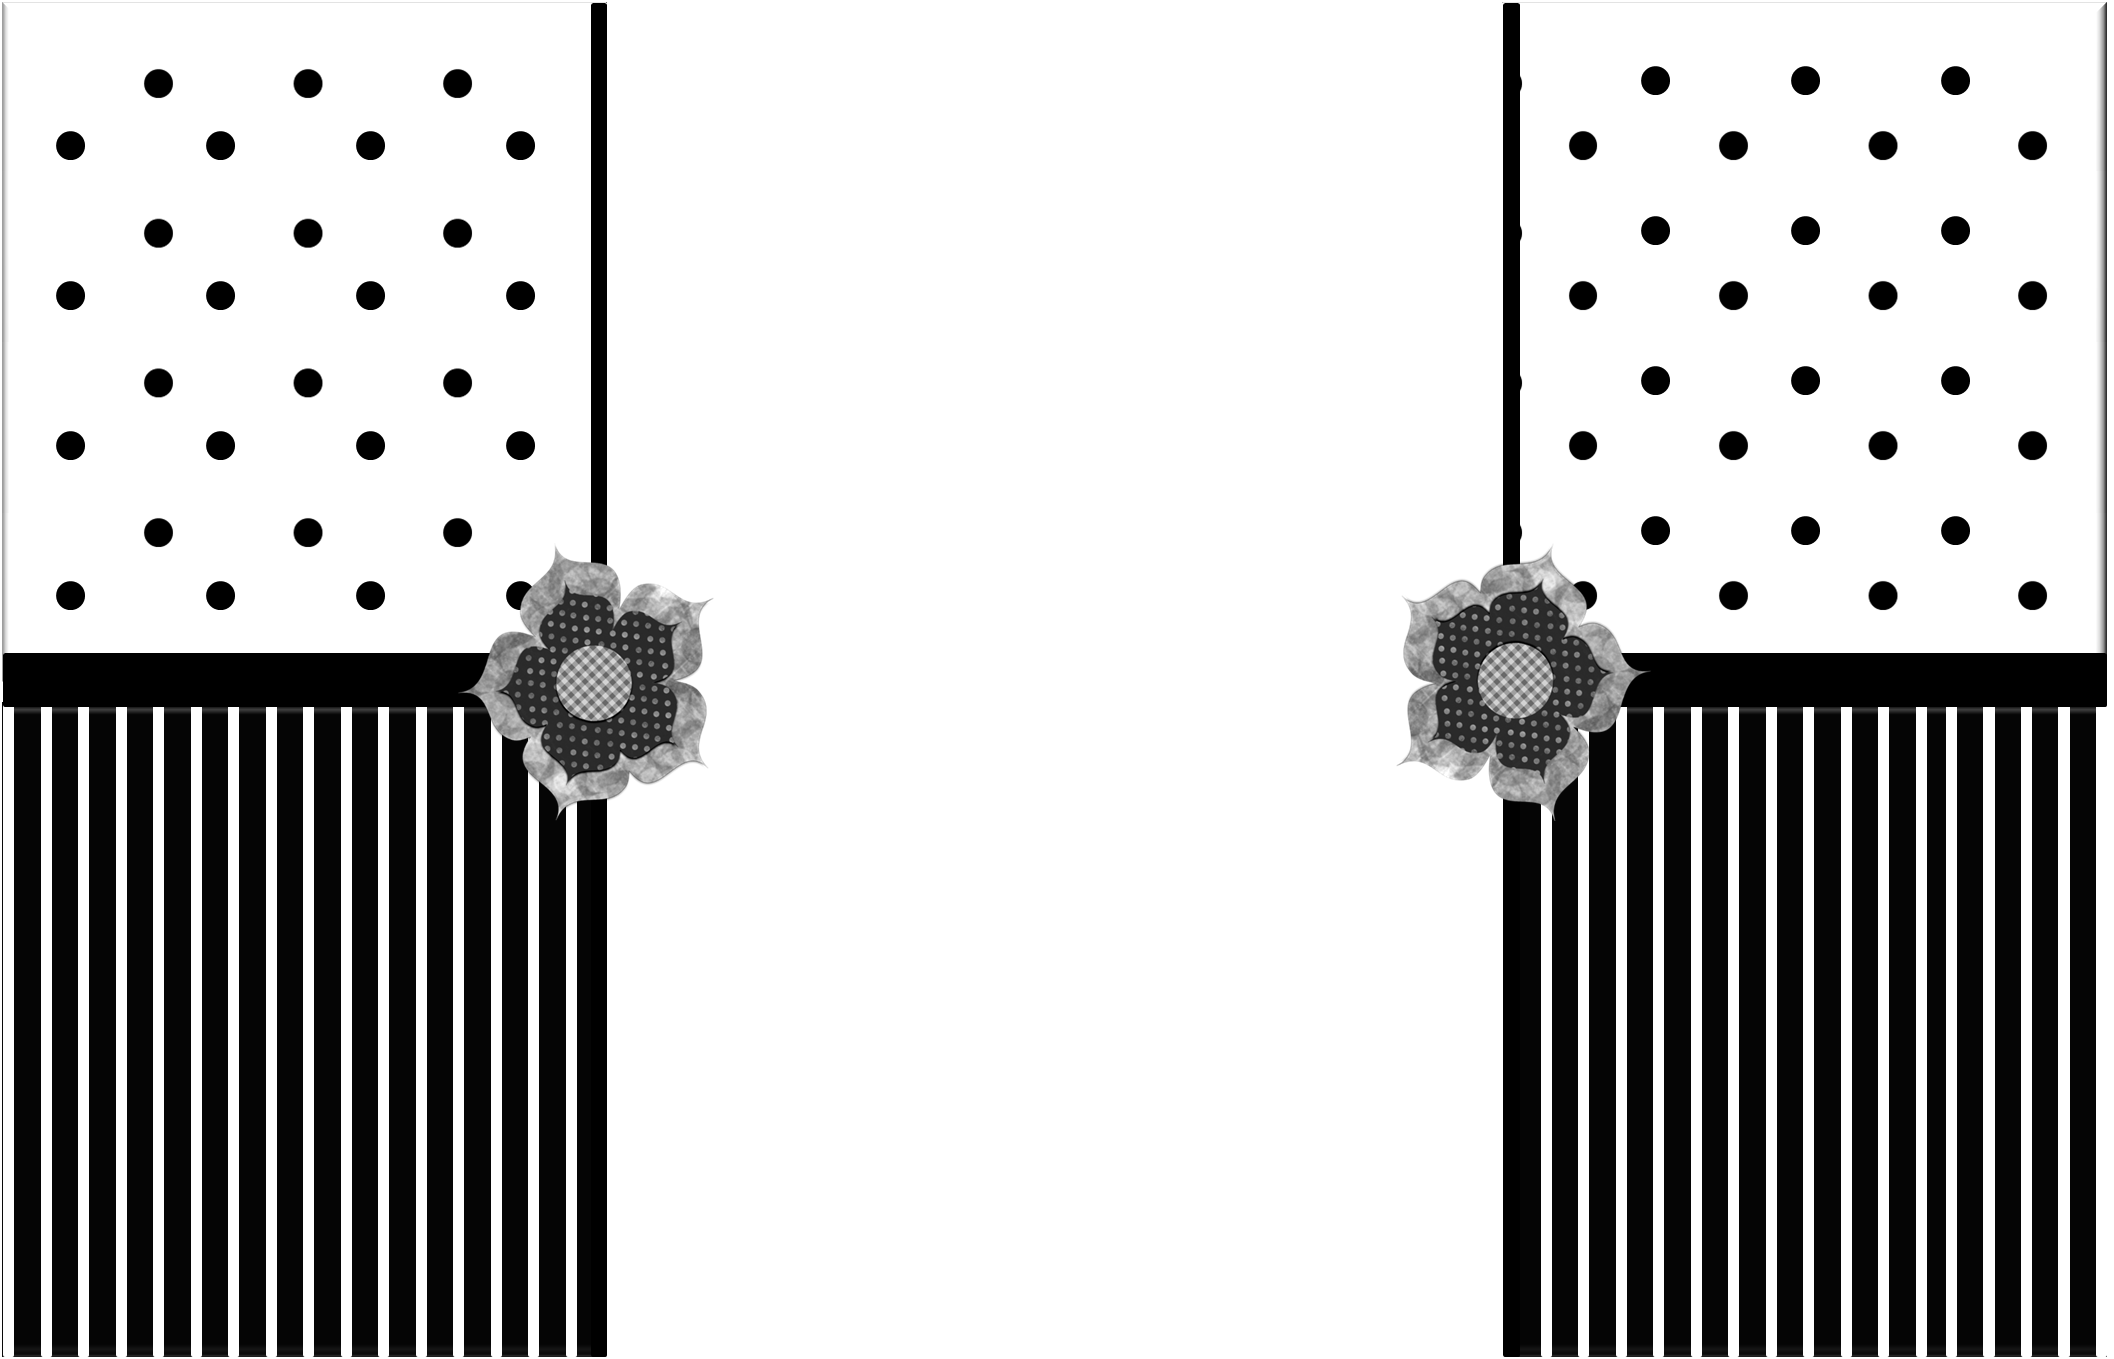 Black and white dot wallpaper wallpapersafari - Black and white hd wallpapers black background ...